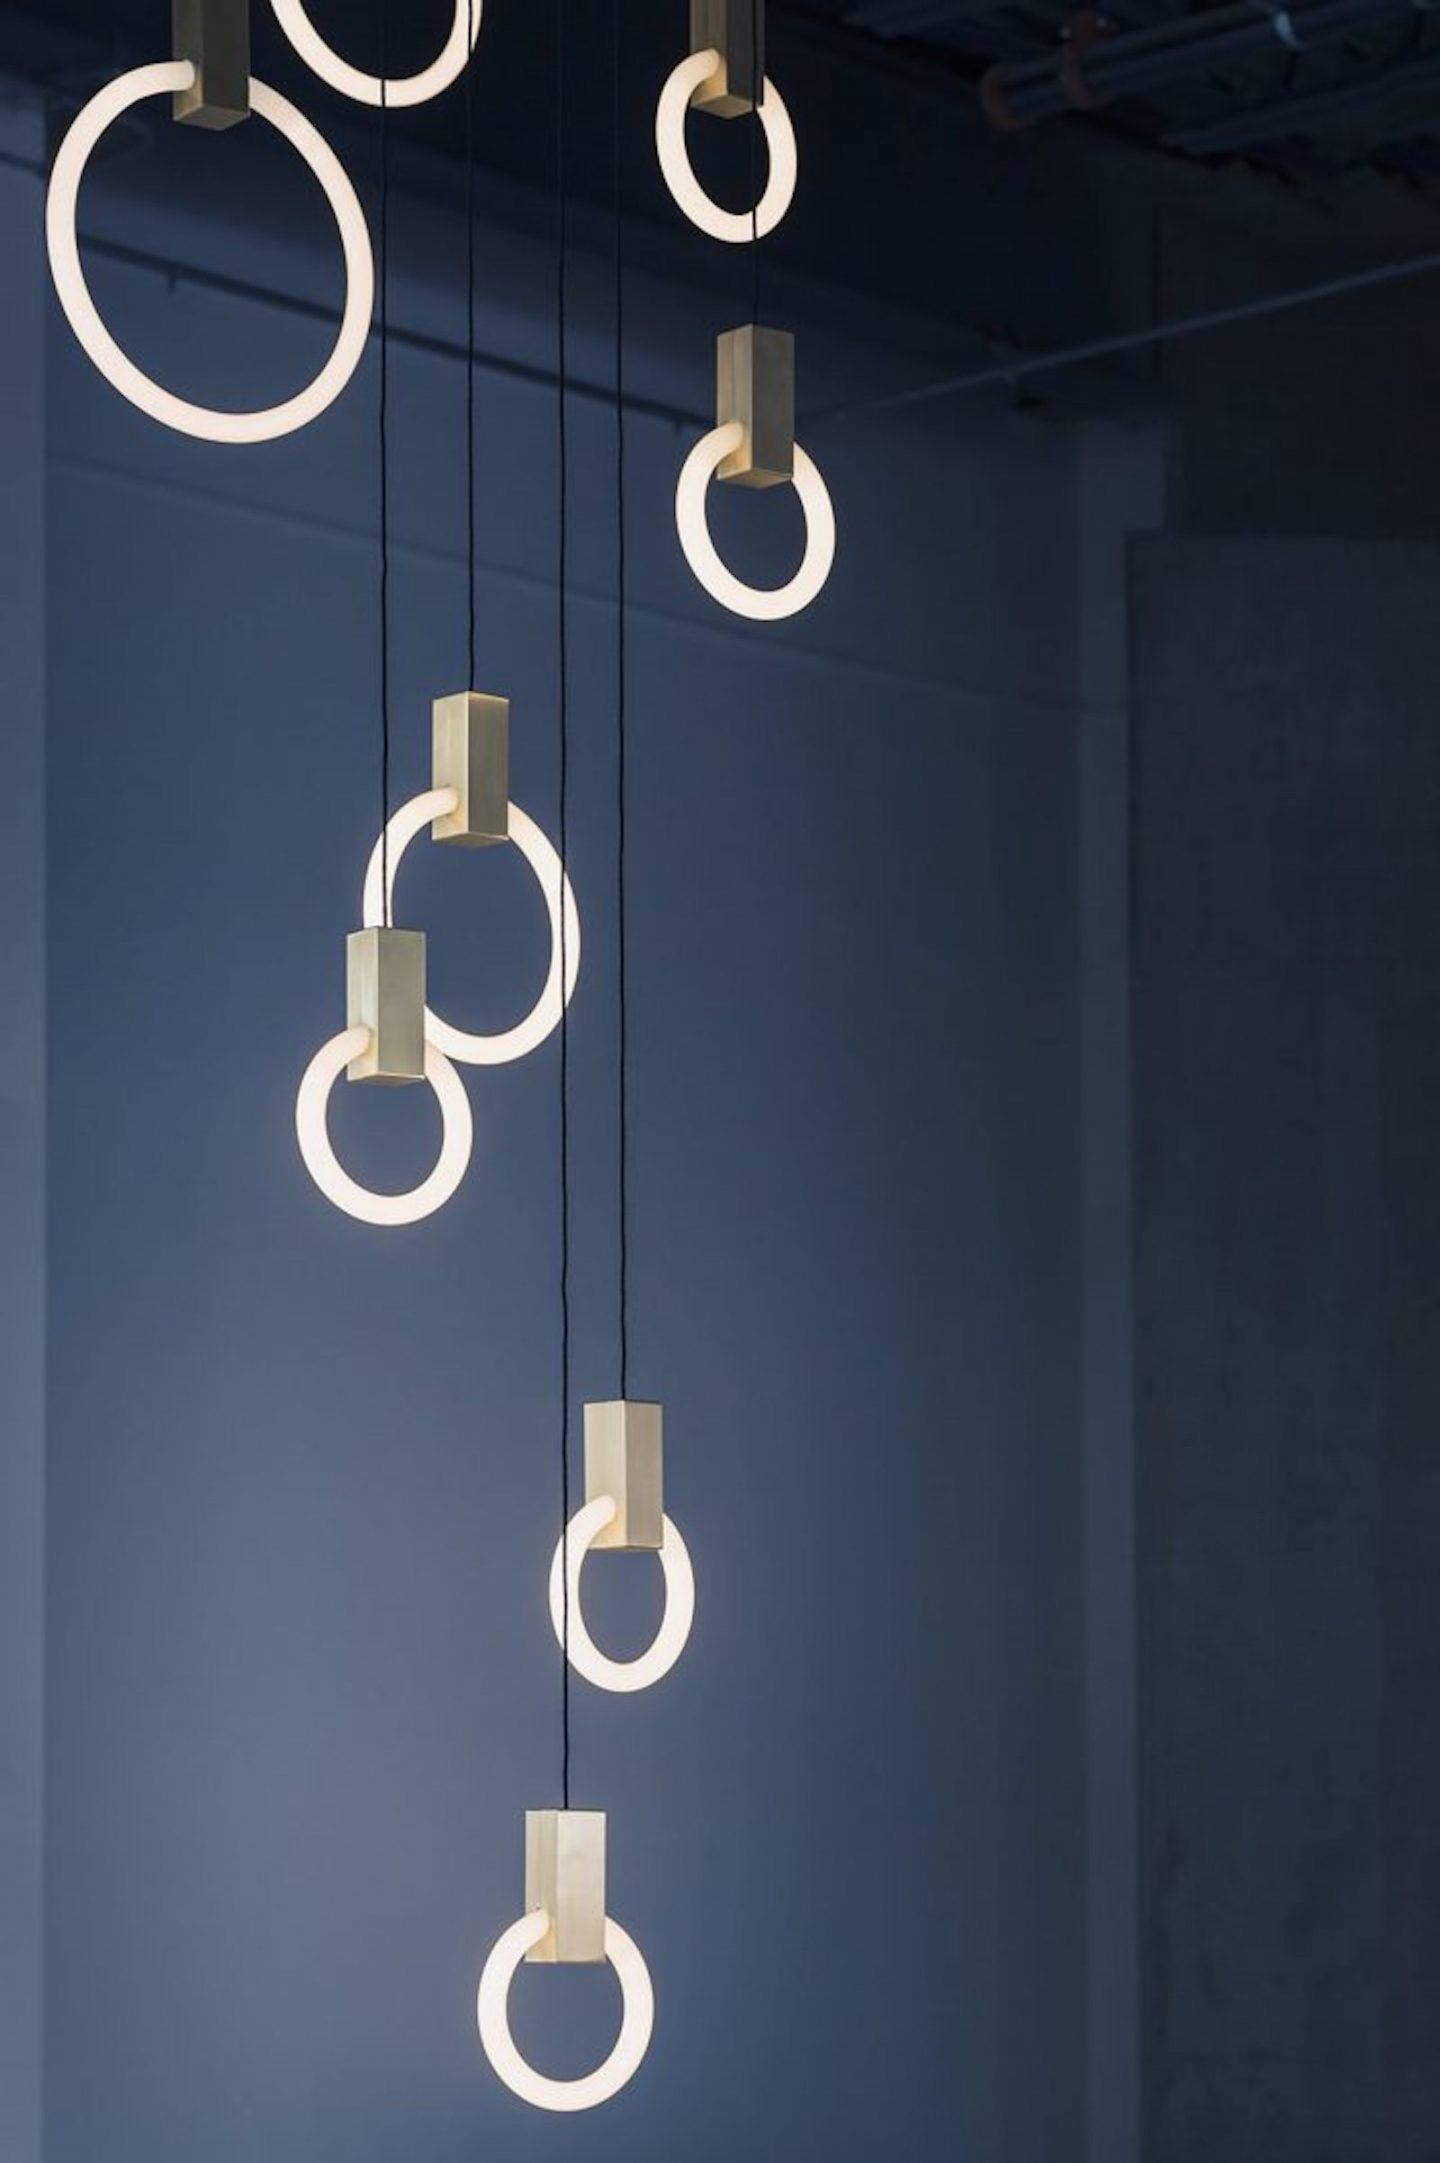 ignant-adesign-halo-lights-004-720x1082